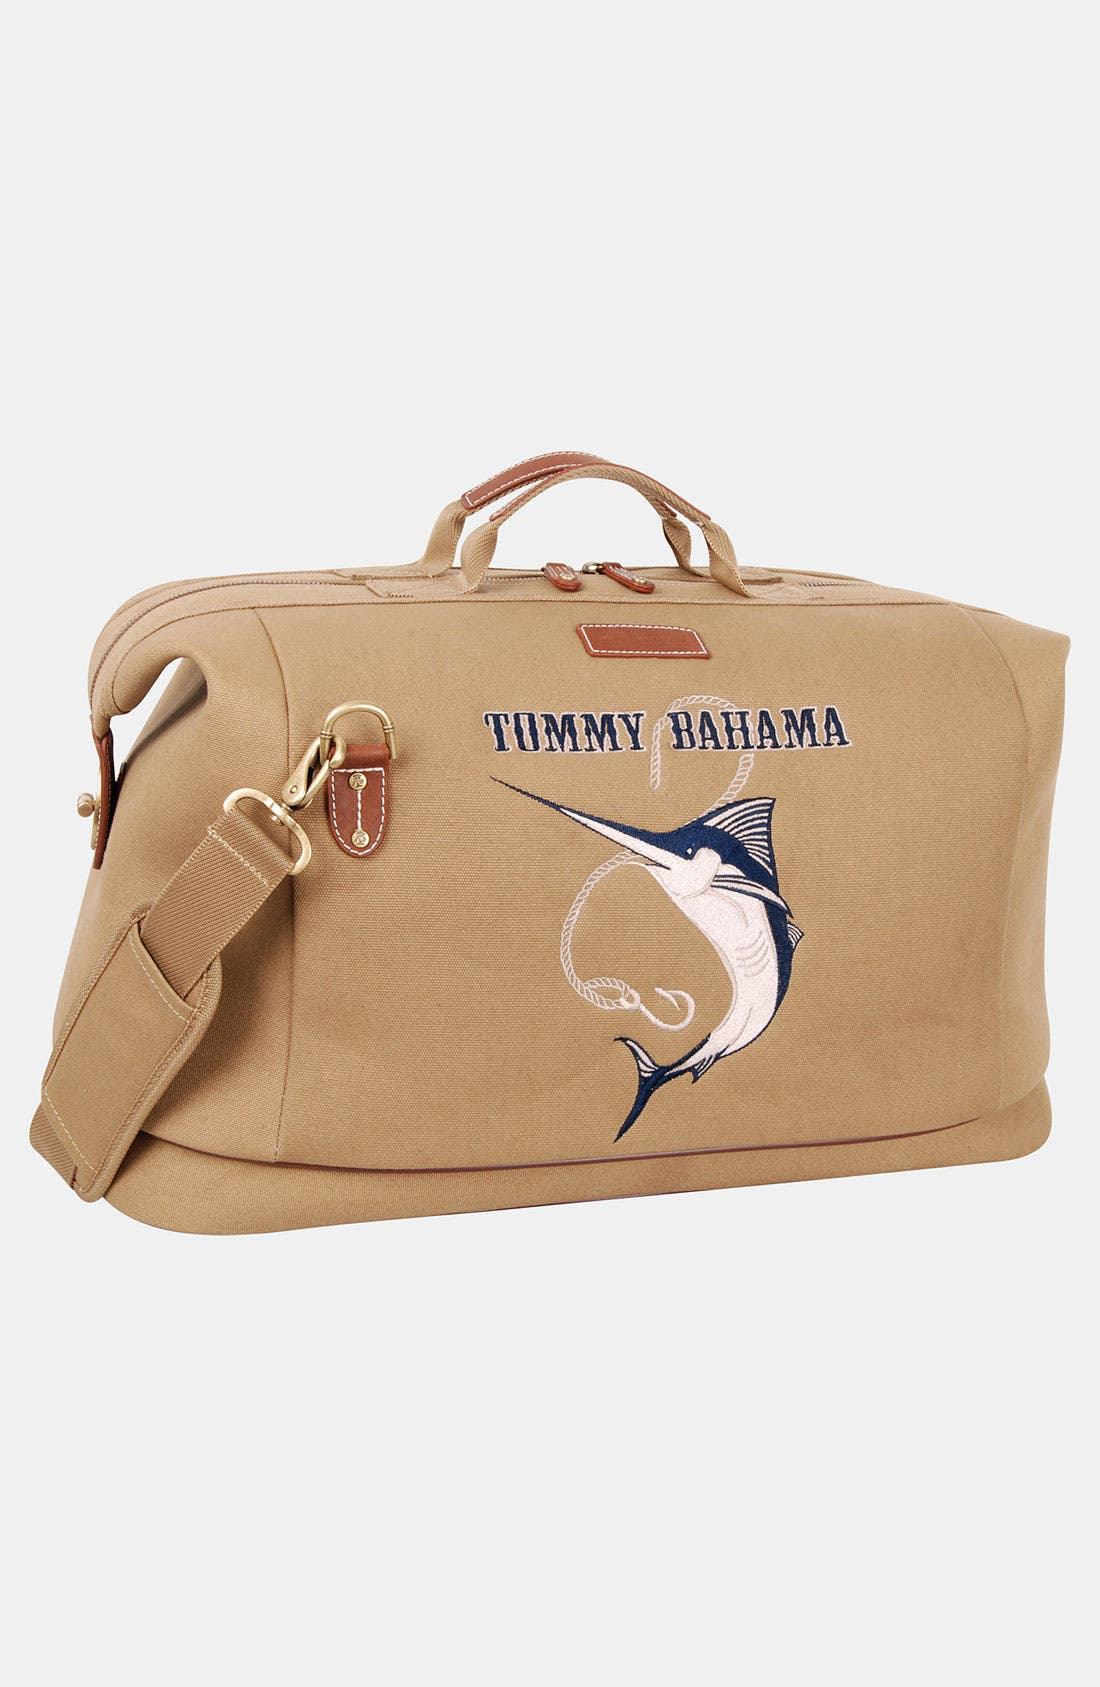 Alternate Image 1 Selected - Tommy Bahama 'Hook Me Up' Duffel Bag